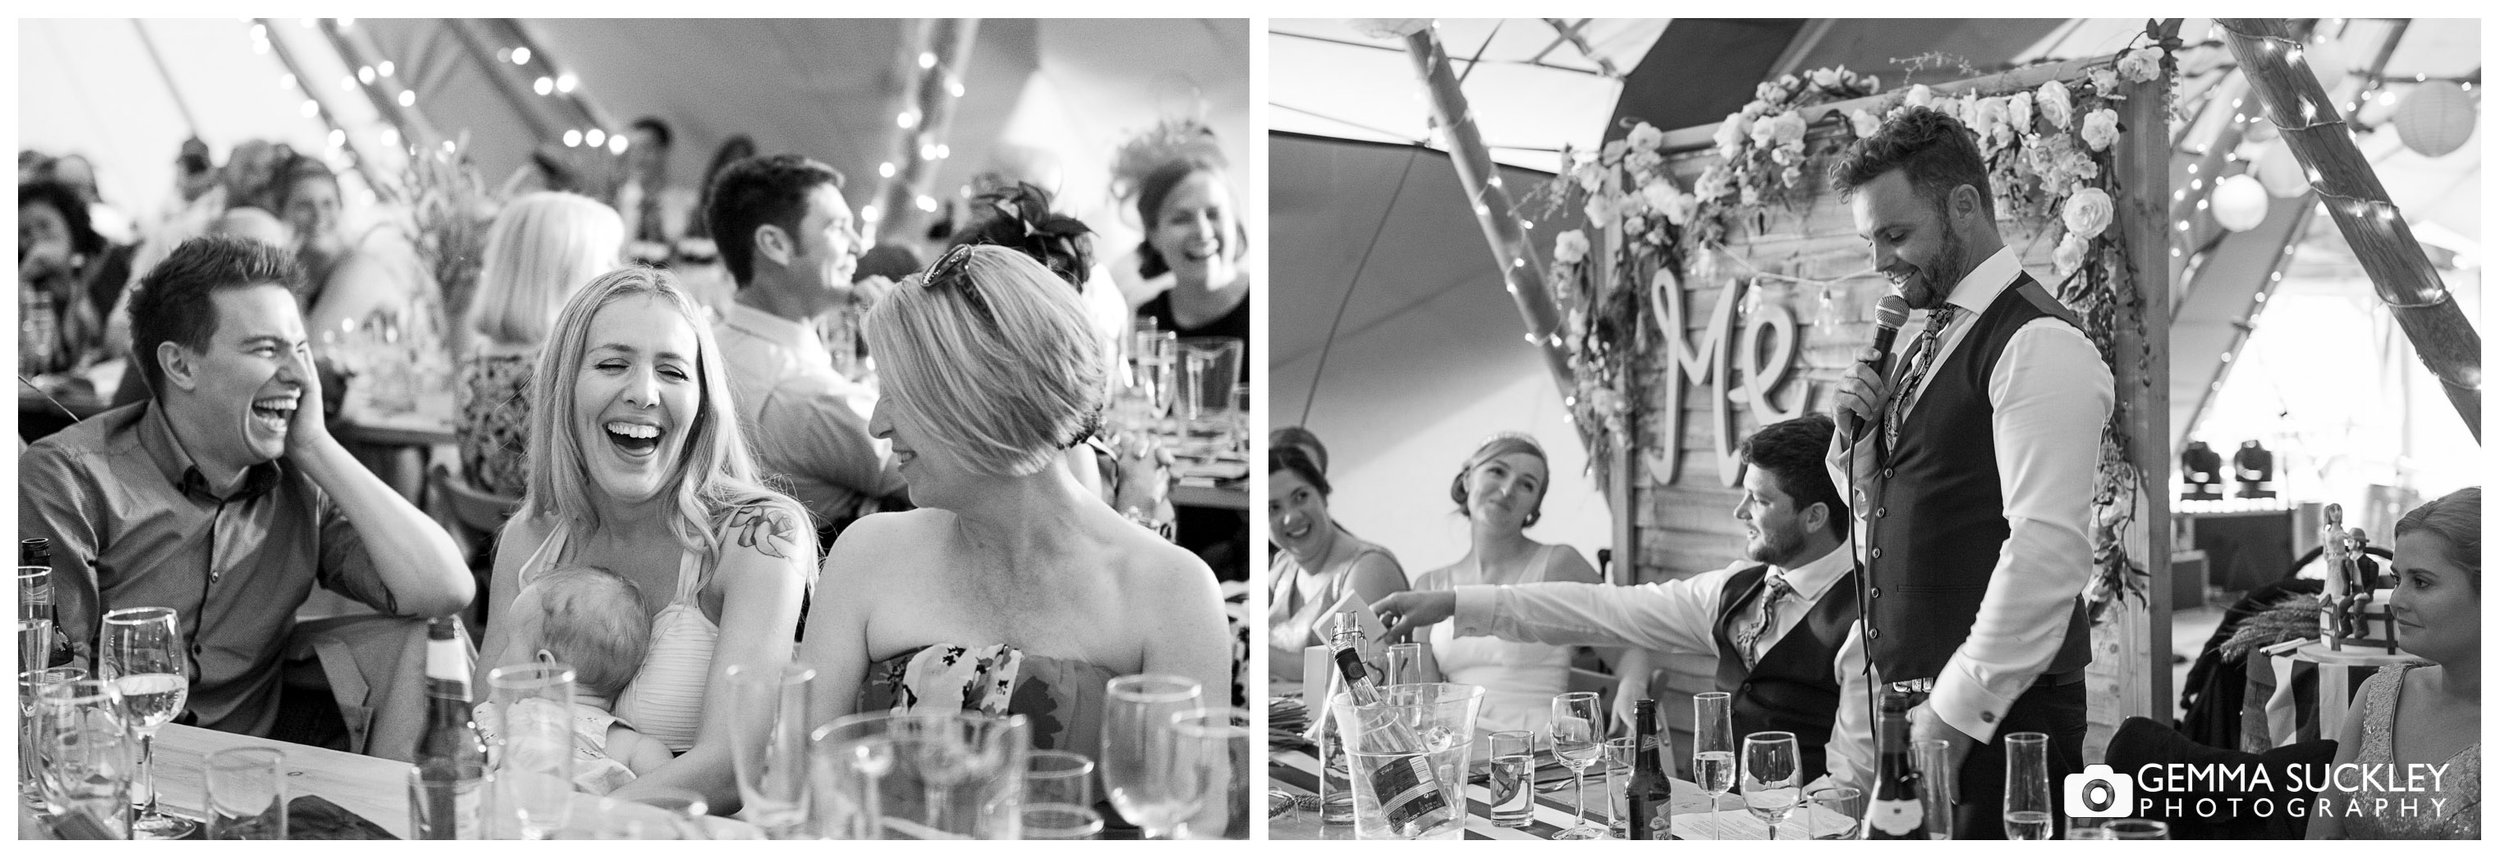 wedding guest laughing at speeches at oakland wedding venue